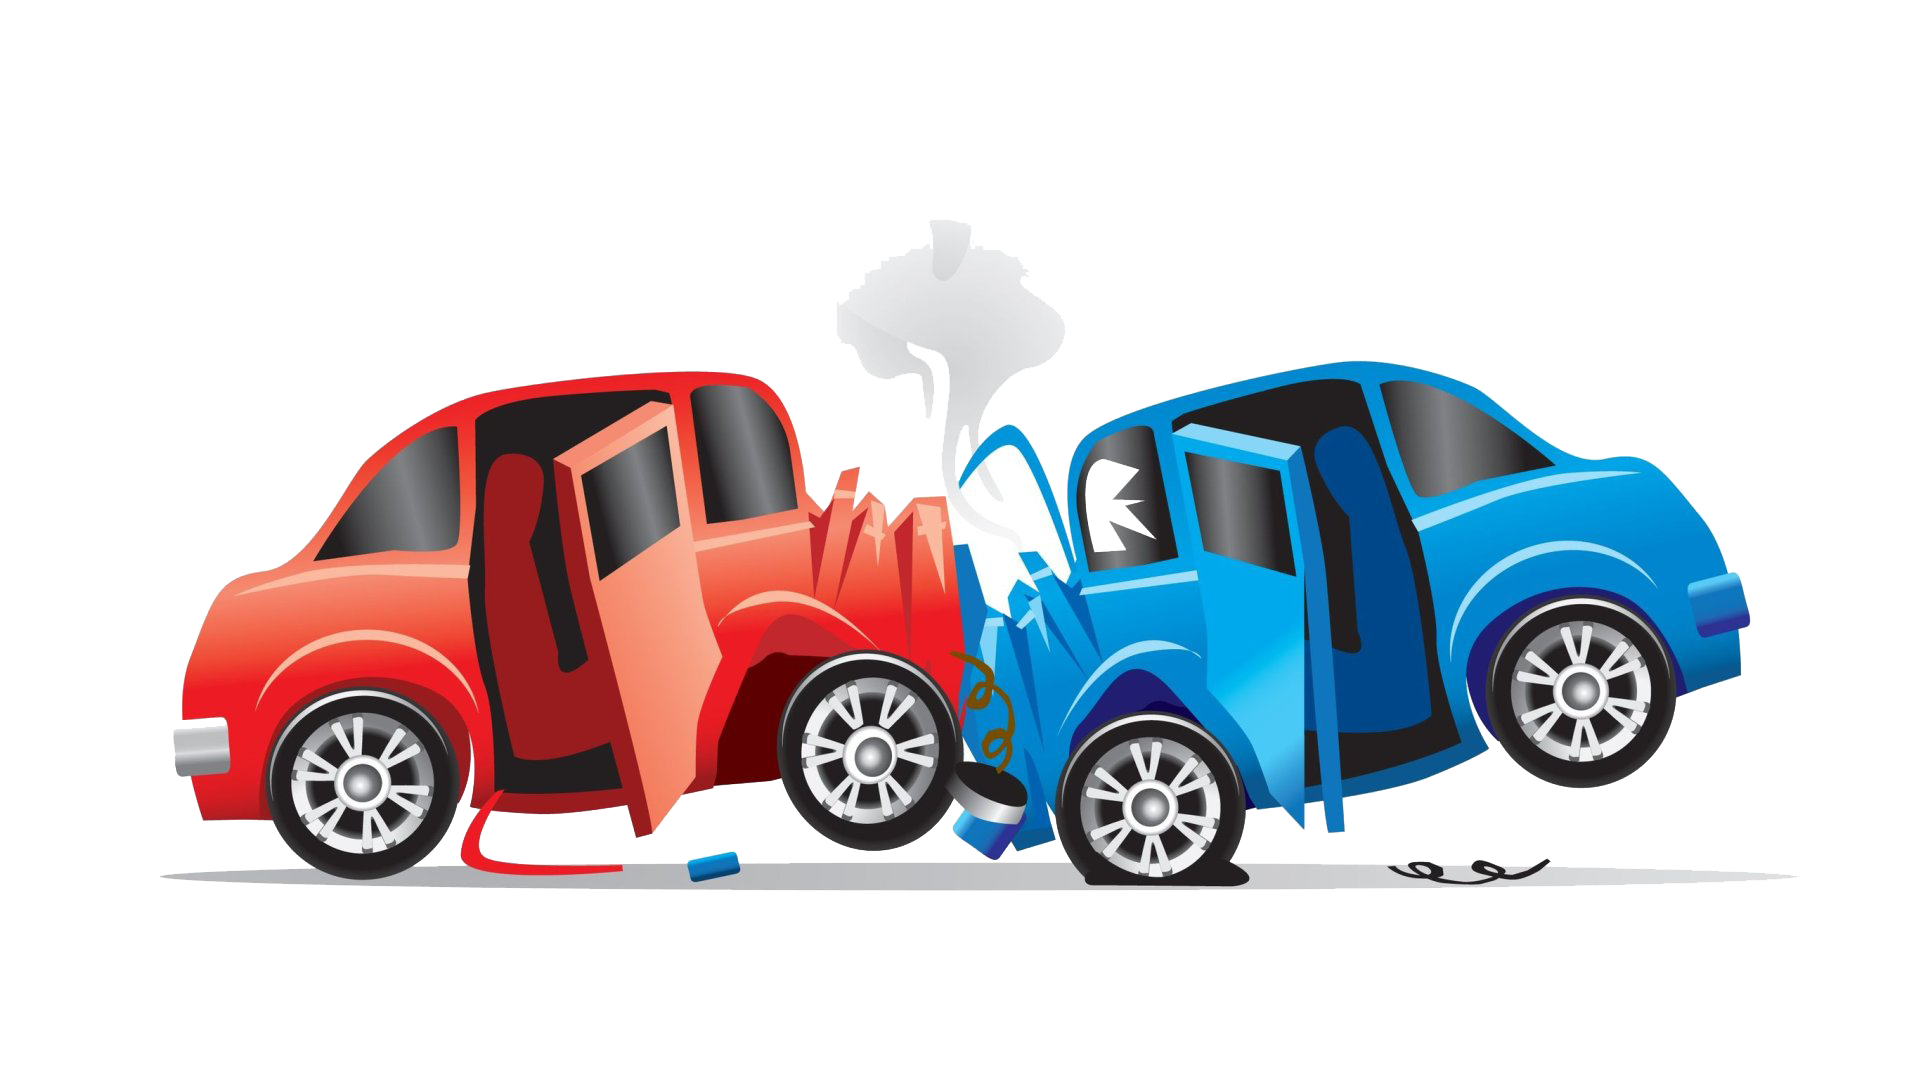 Car collision clipart graphic freeuse download Car Accident PNG Picture | PNG Mart graphic freeuse download